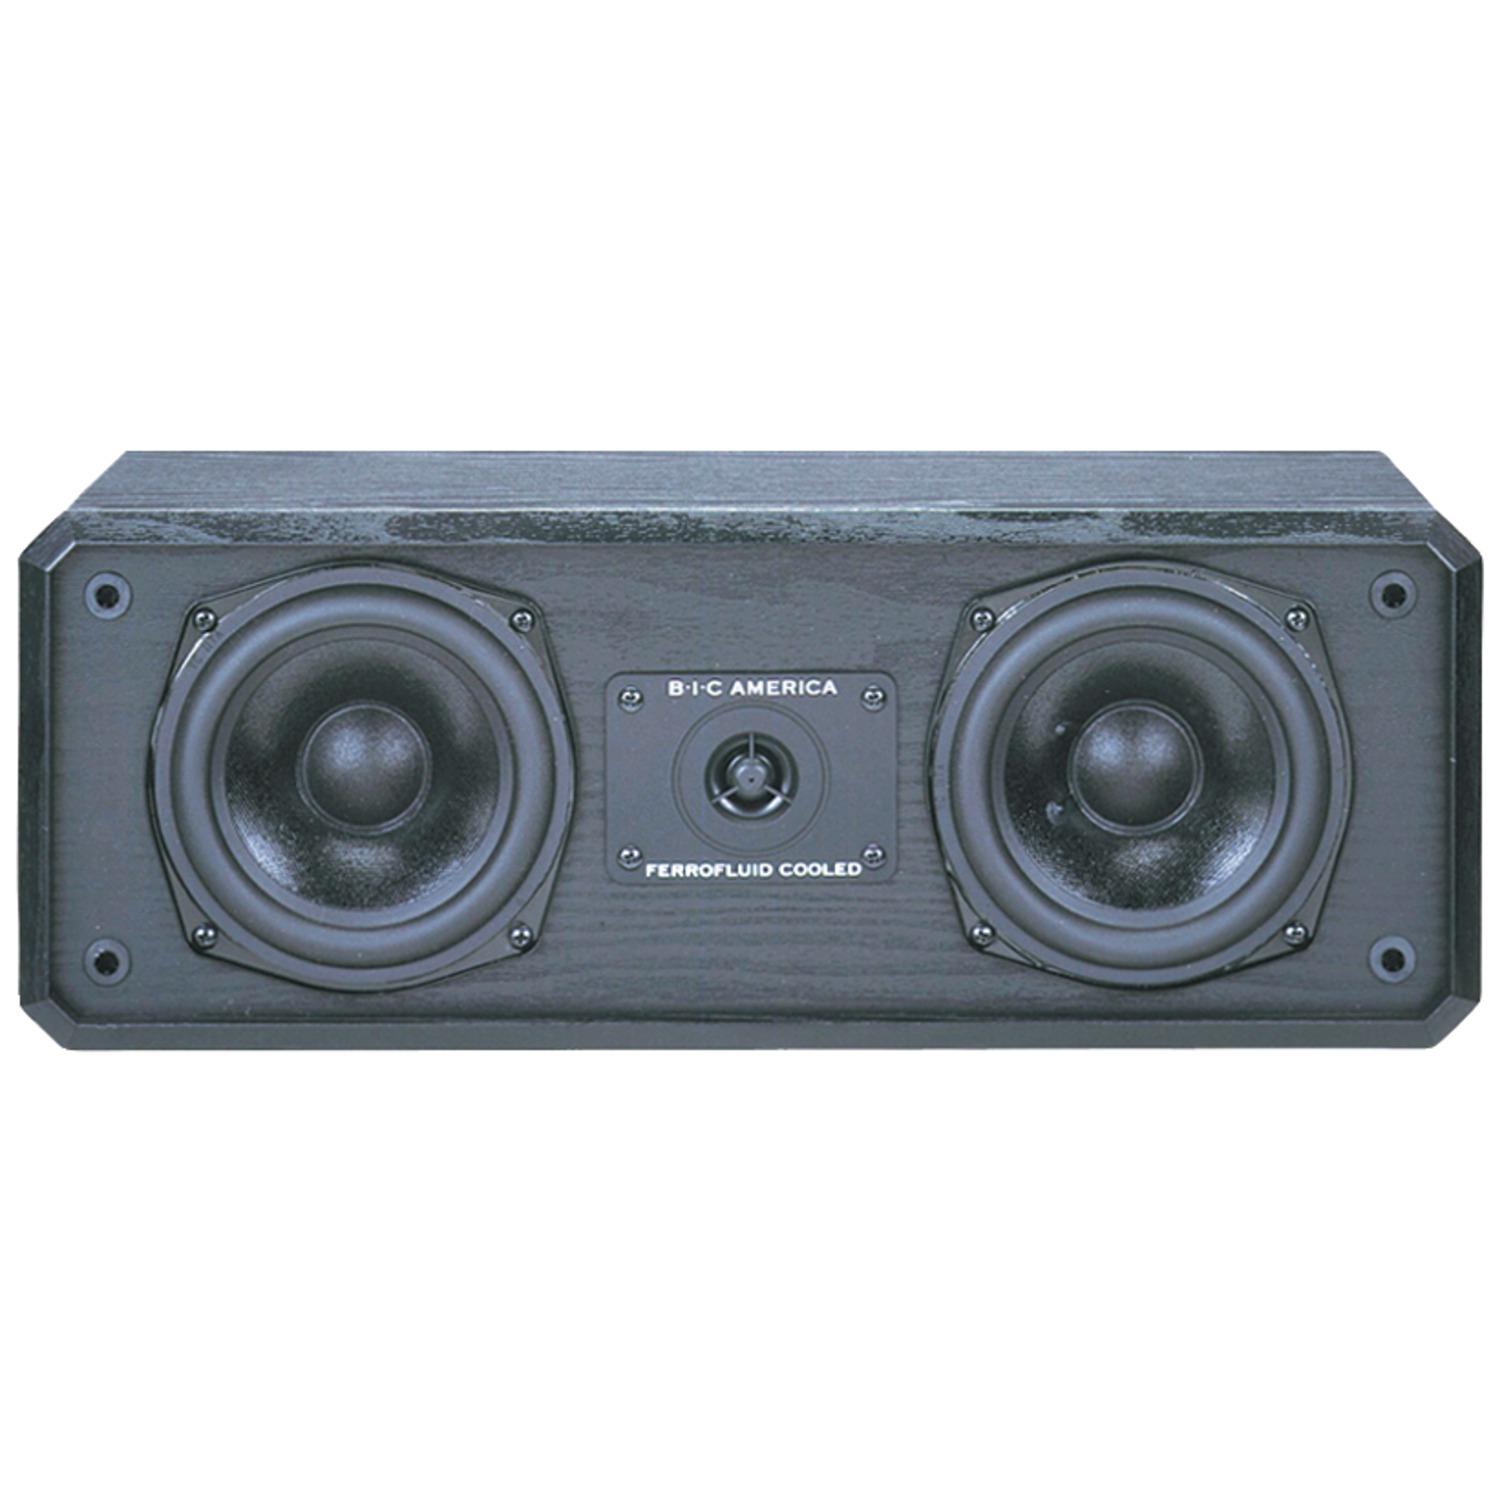 "Bic America Dv52clrb 5.25"" Center Channel Speaker"